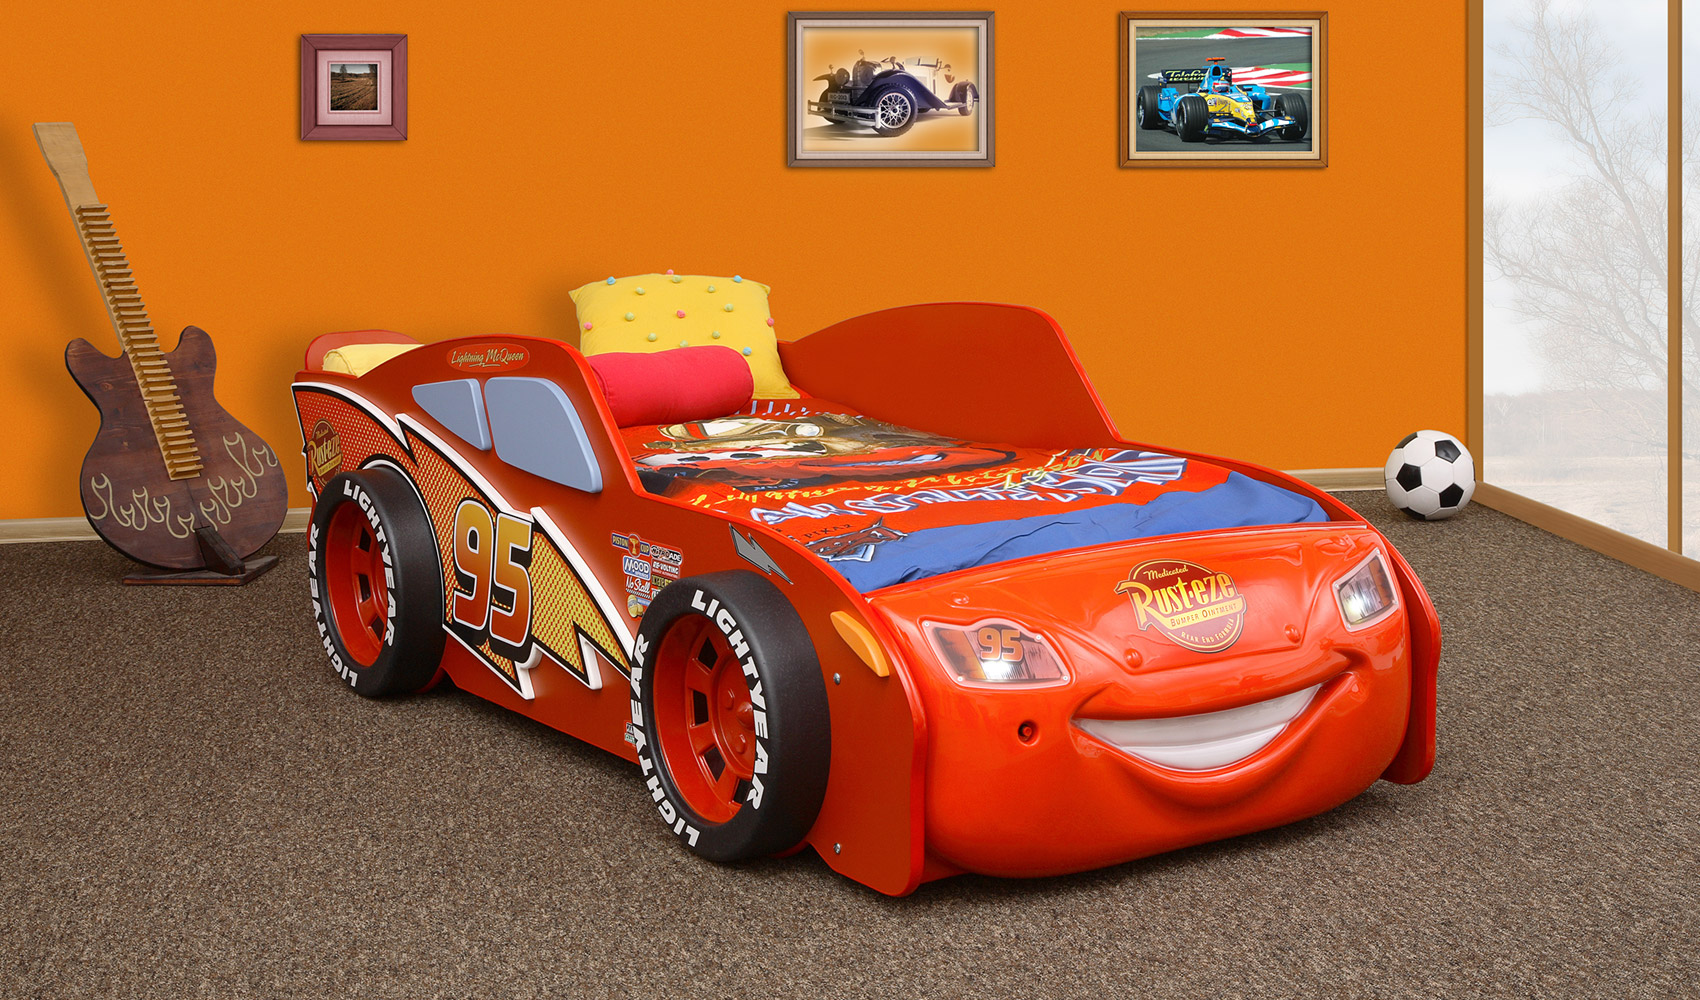 autobett lightning mcqueen kinderbett schlafen rennwagenbett bett kinder cars ebay. Black Bedroom Furniture Sets. Home Design Ideas